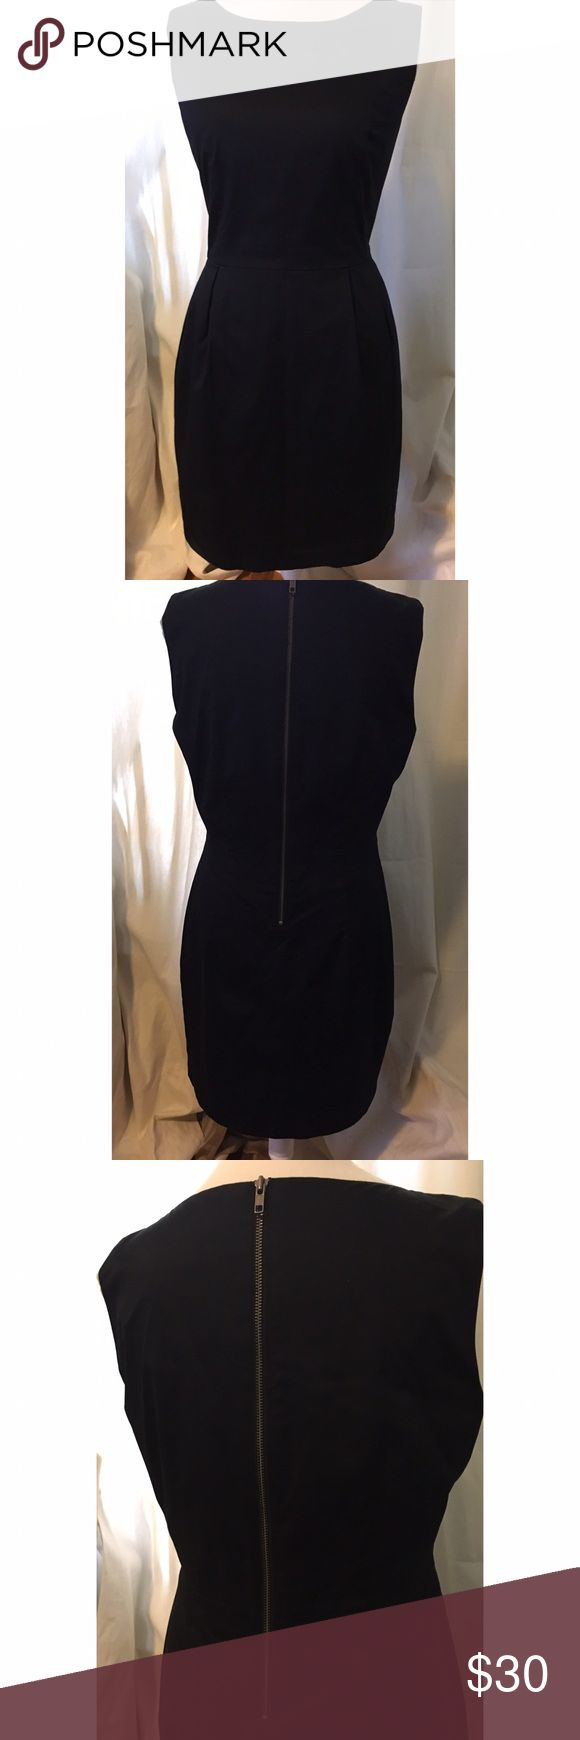 H&M black shift dress with pockets. Size 14 Black shift dress with pockets and silver zipper detail in the back. Worn once. Great condition. H&M Dresses